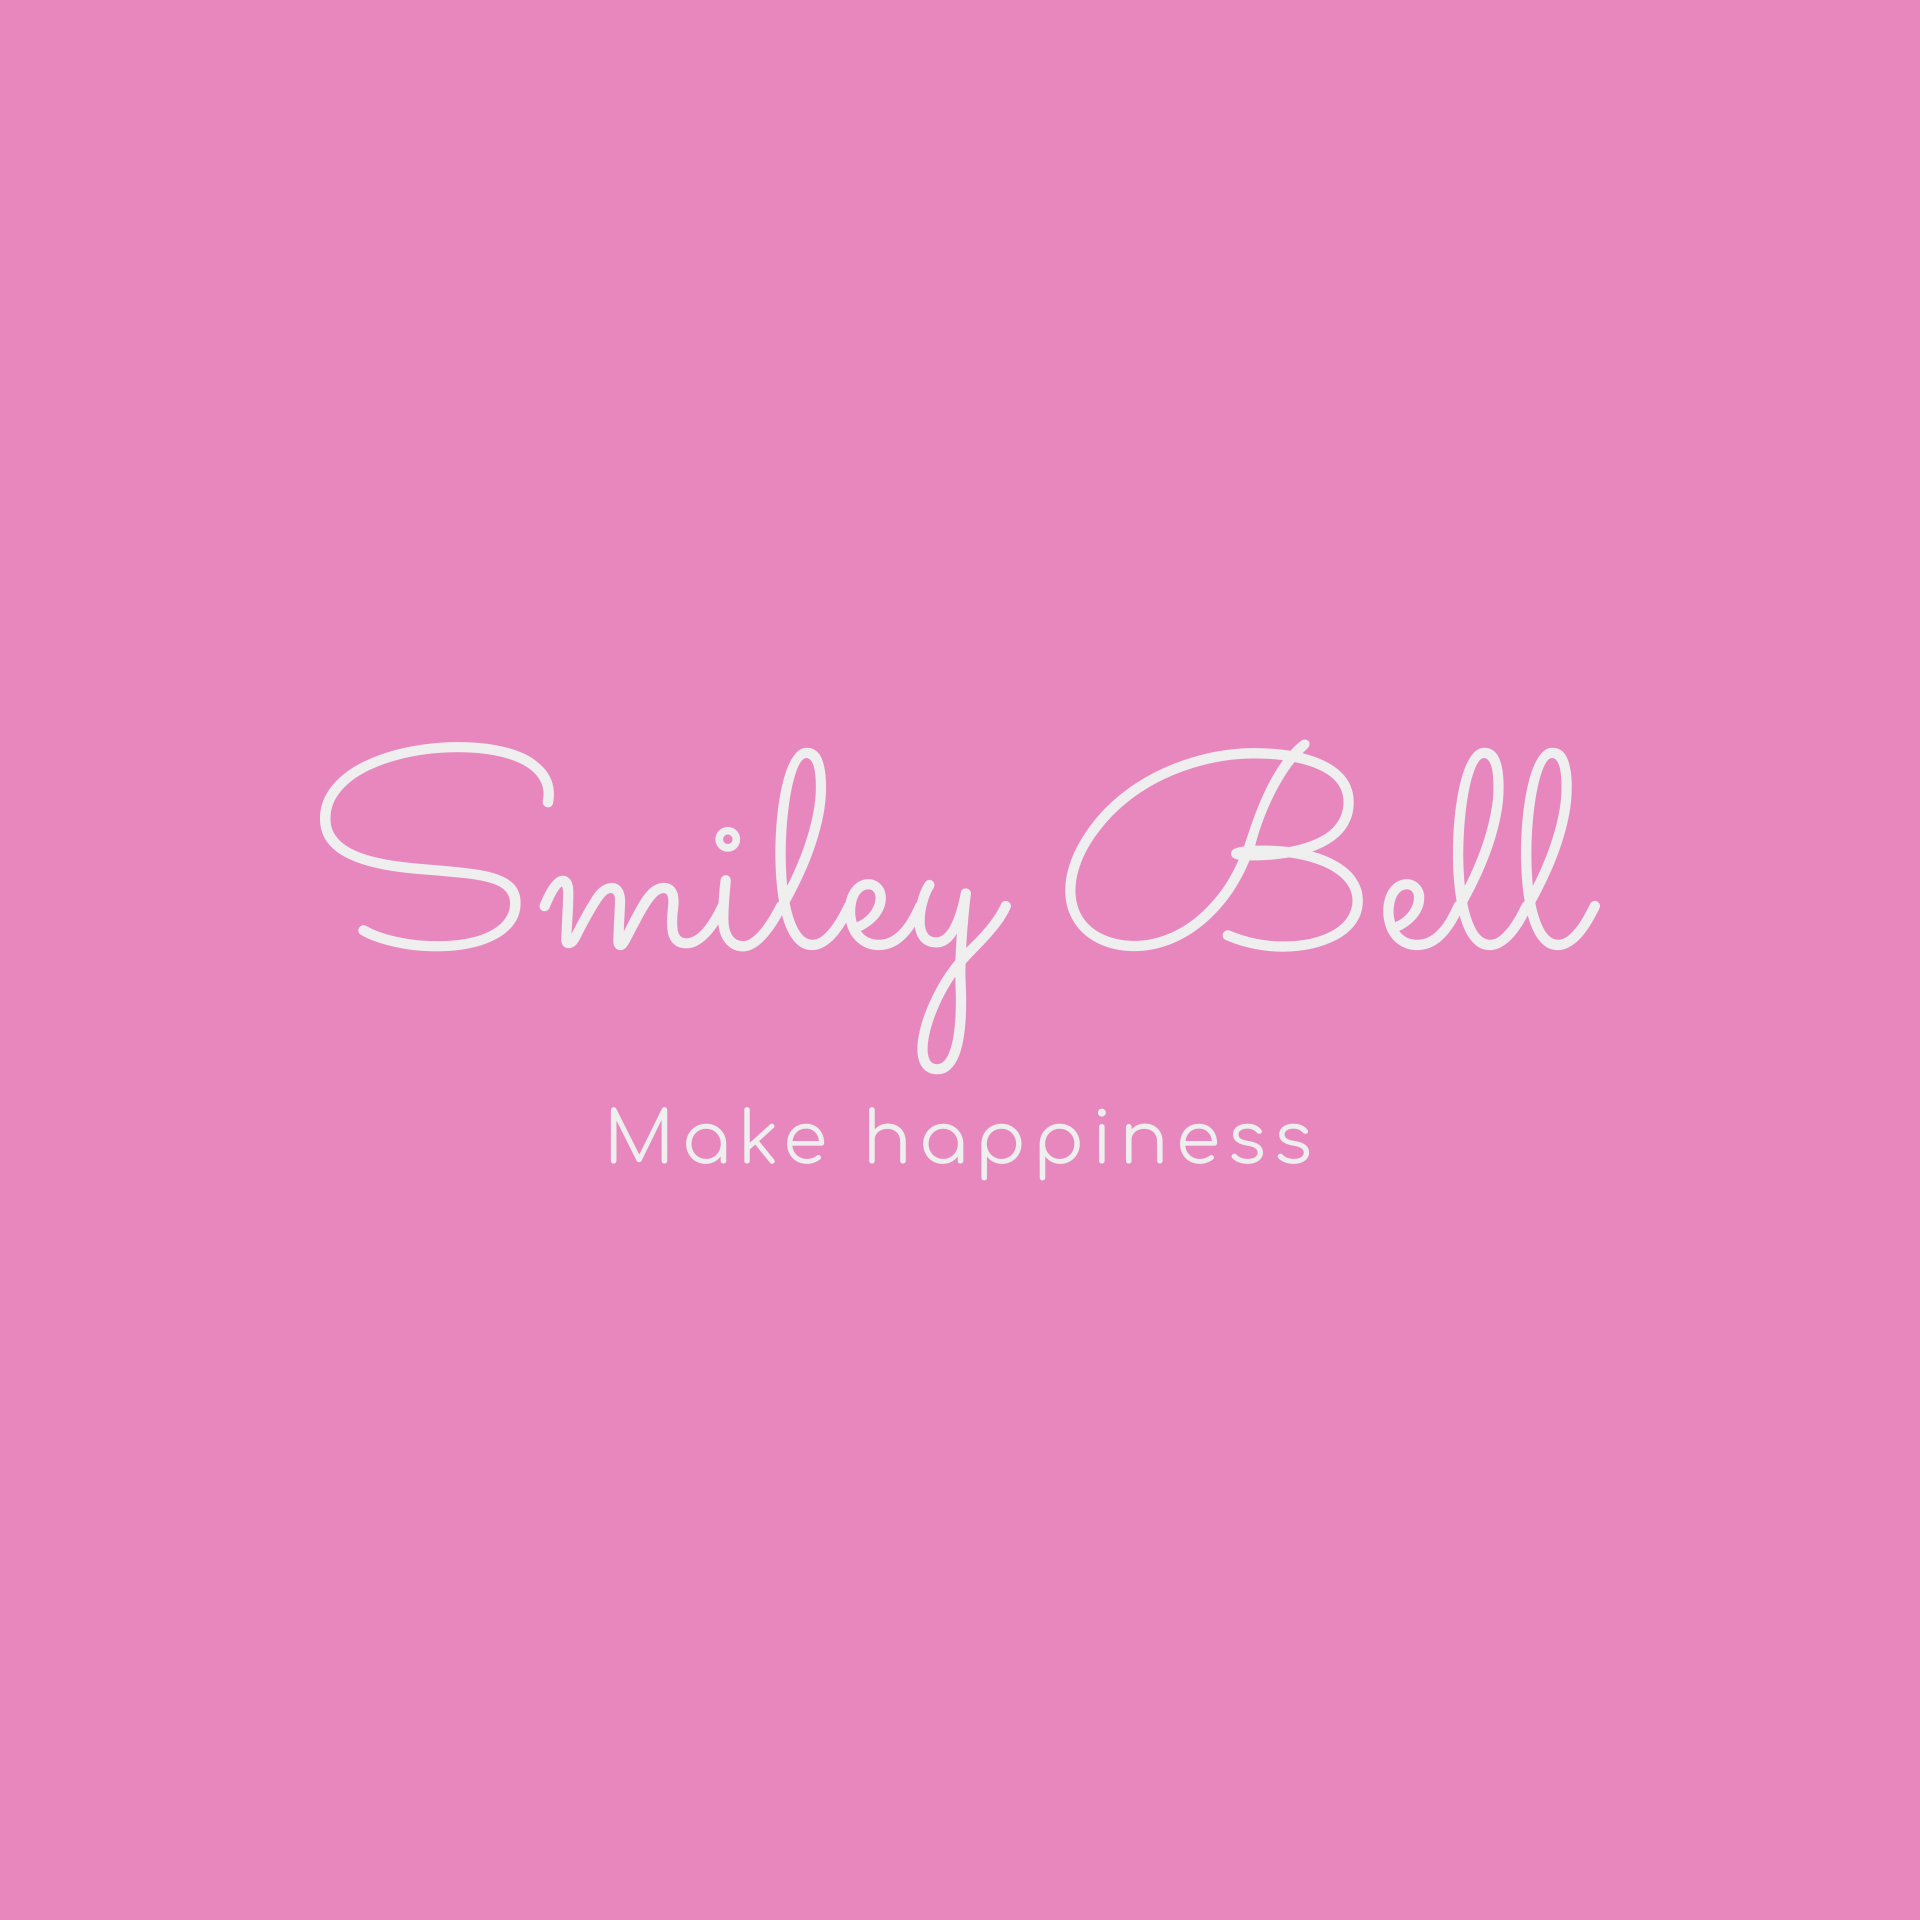 Smiley Bell